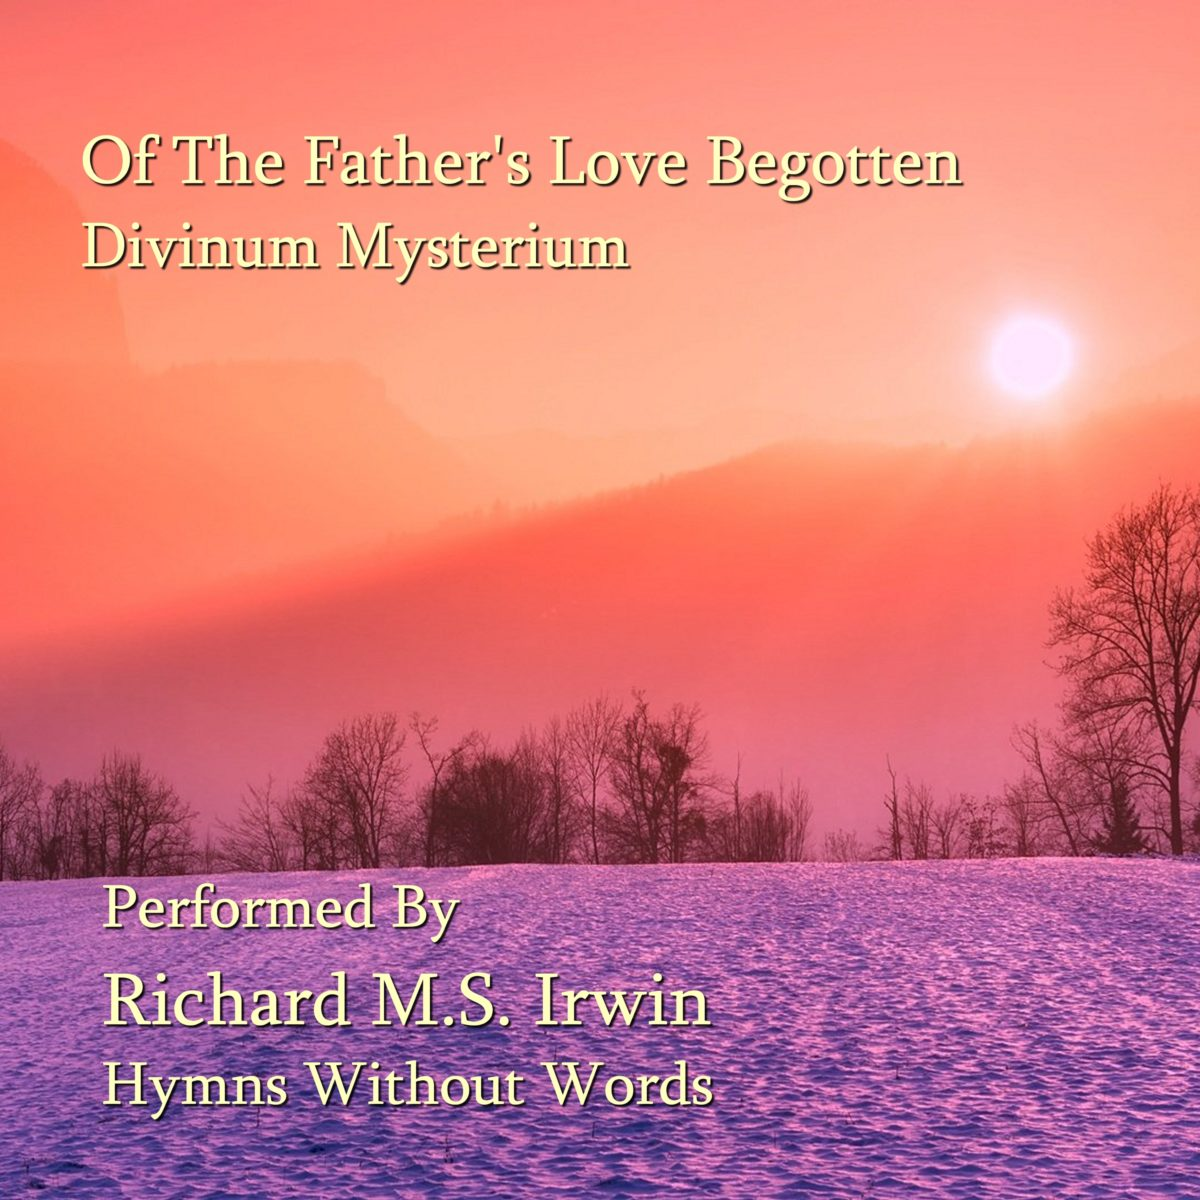 Of The Father'S Love Begotten (Divinum Mysterium, 5 Verses)